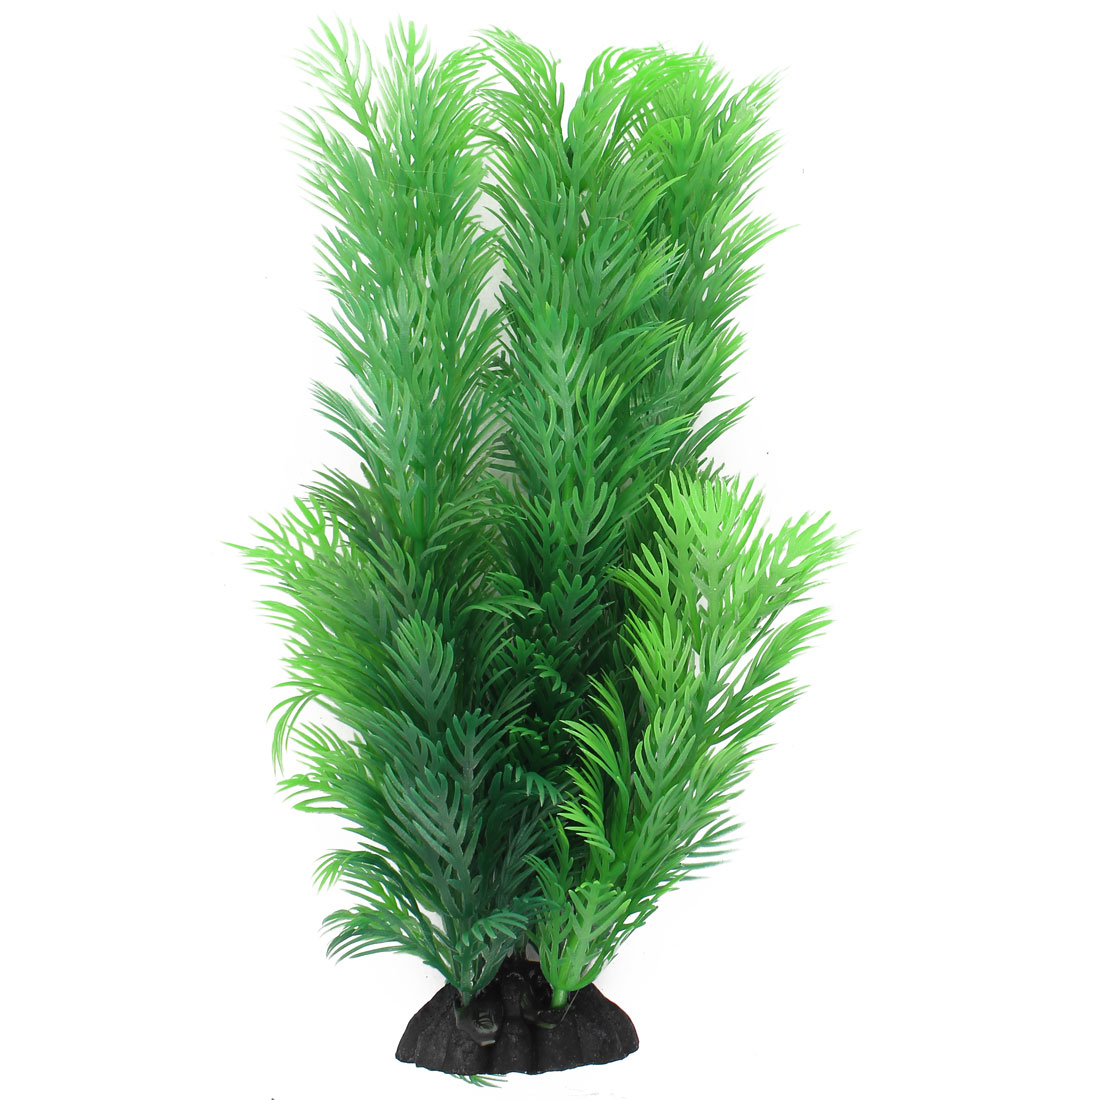 Plastic Glyptostrobus Pensilis Accent Aquarium Plant Fish Tank Decor Green